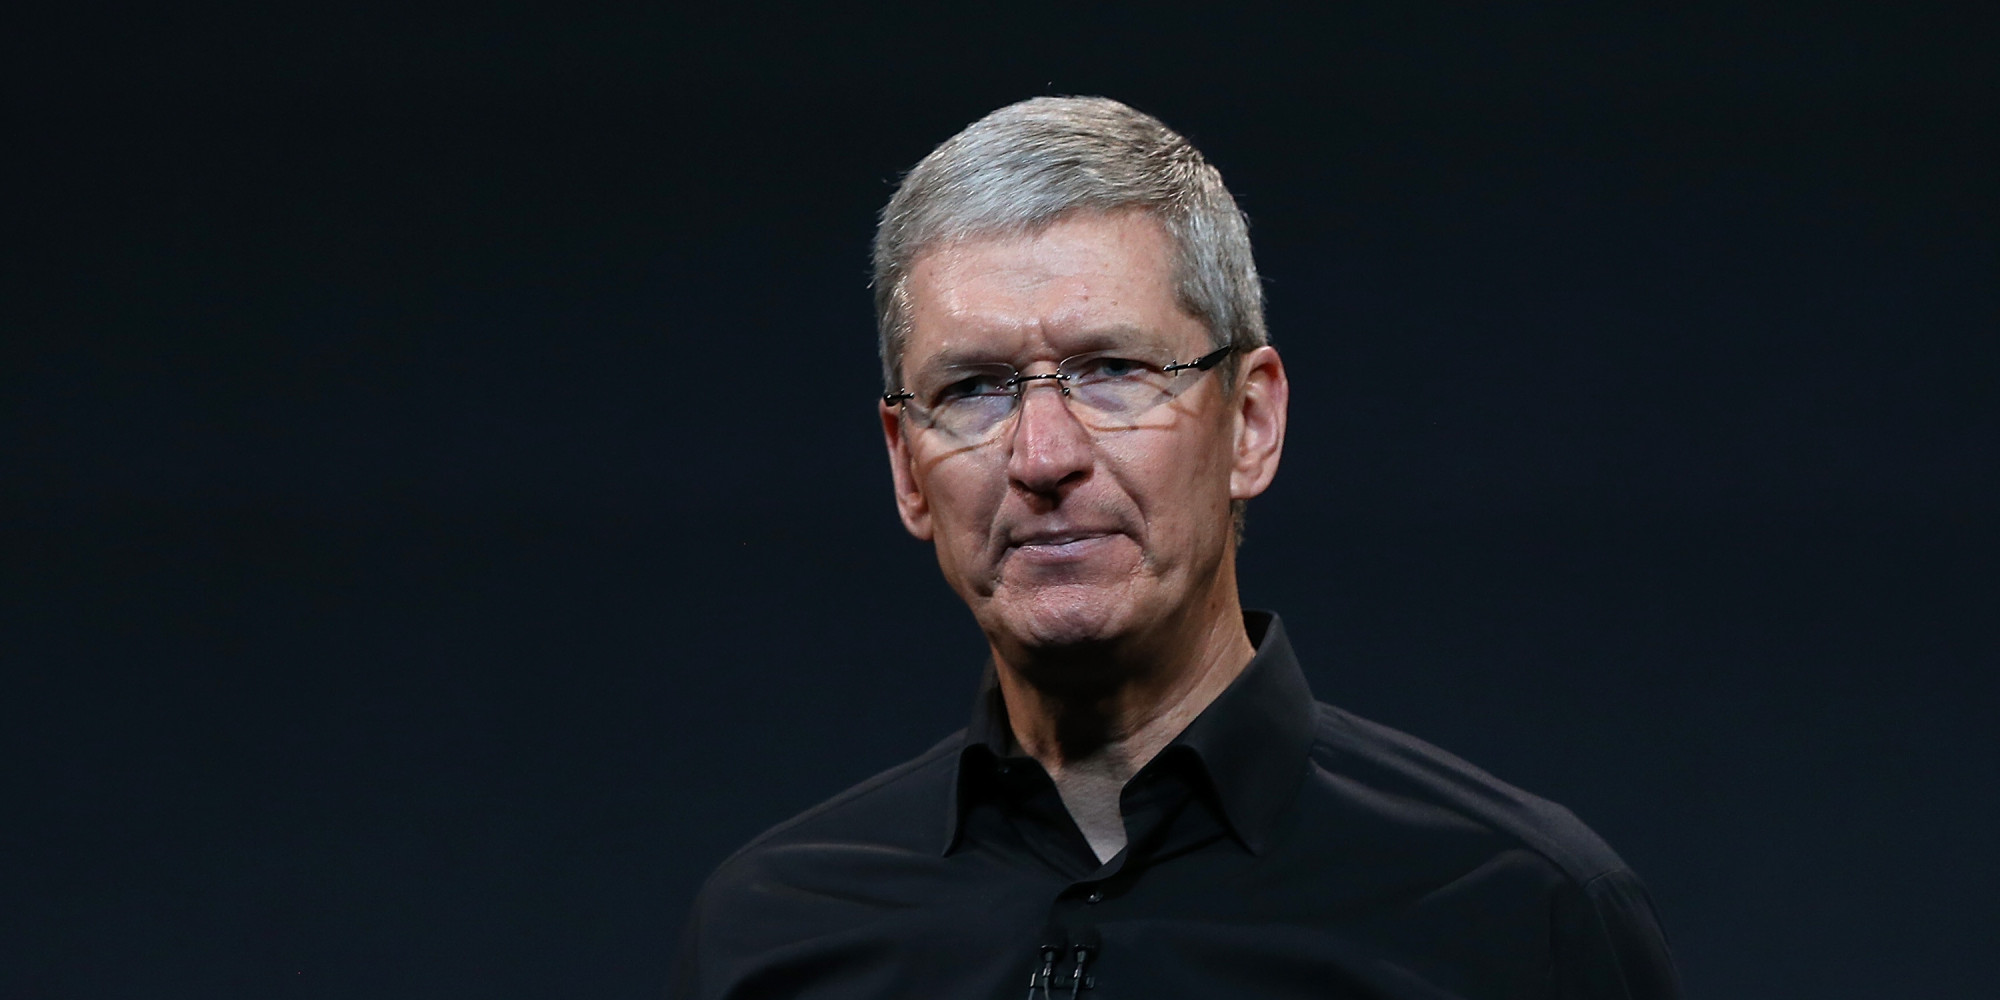 2000x1000 - Tim Cook Wallpapers 23